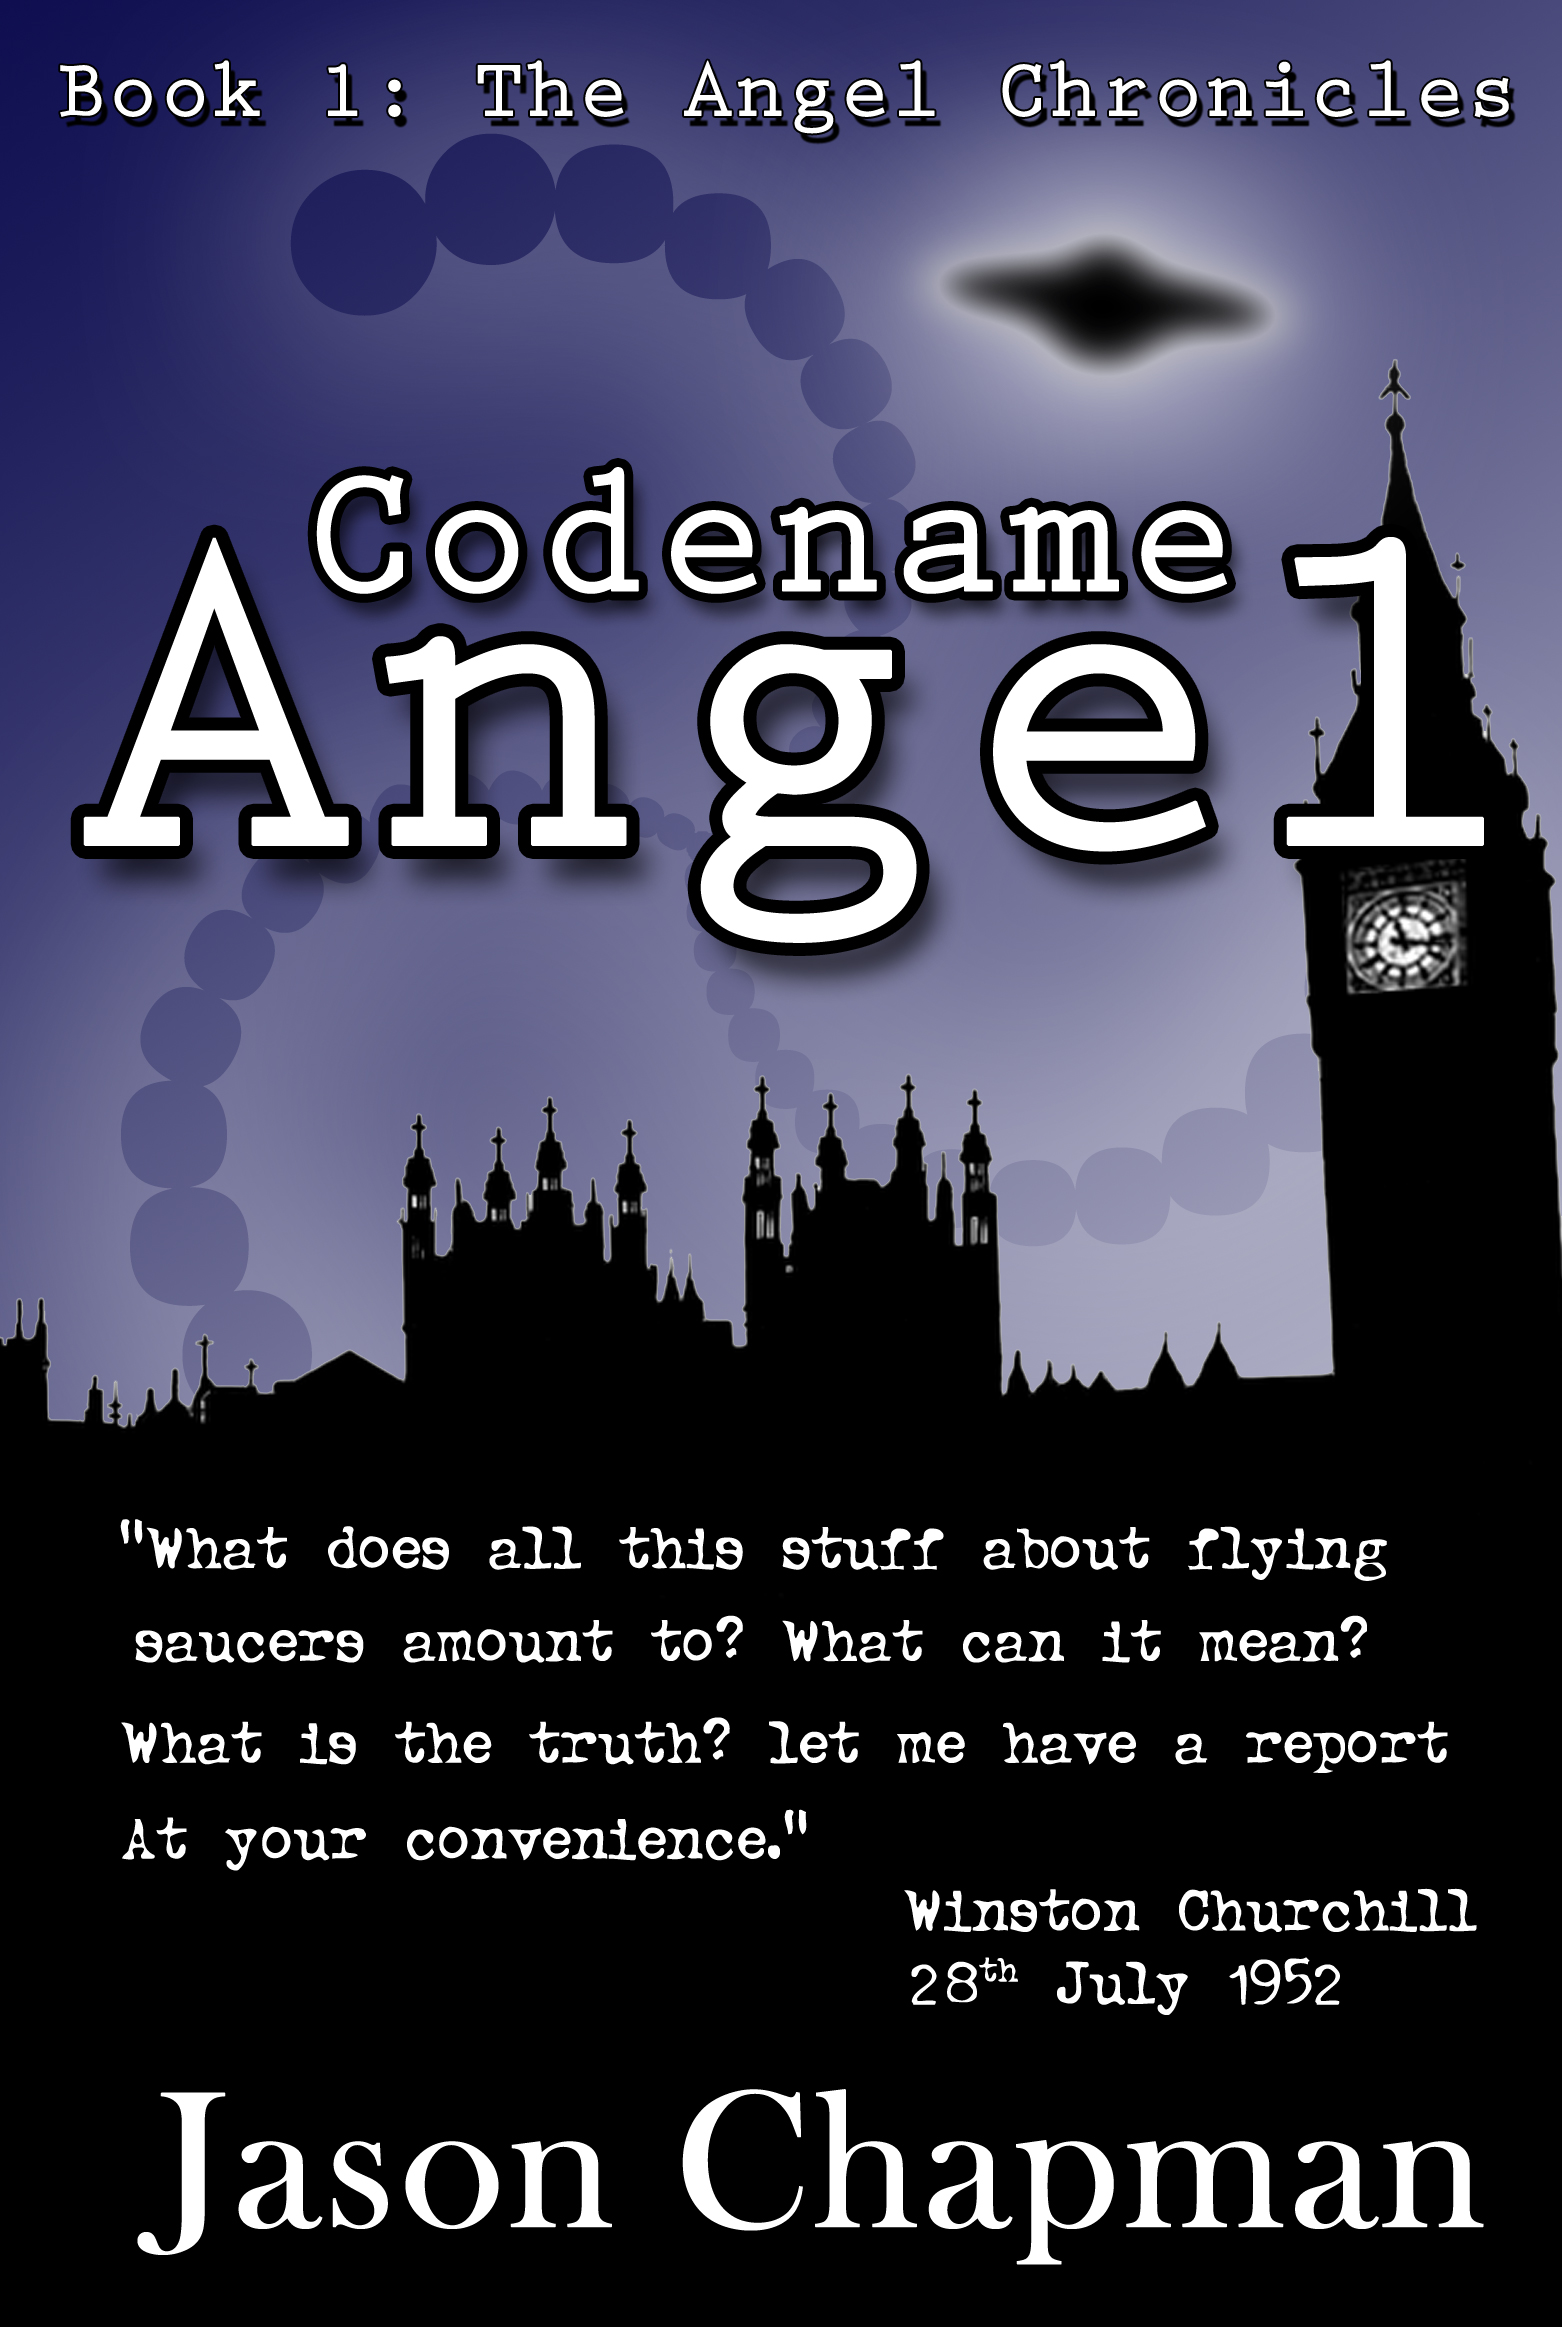 Codename Angel by Jason Chapman